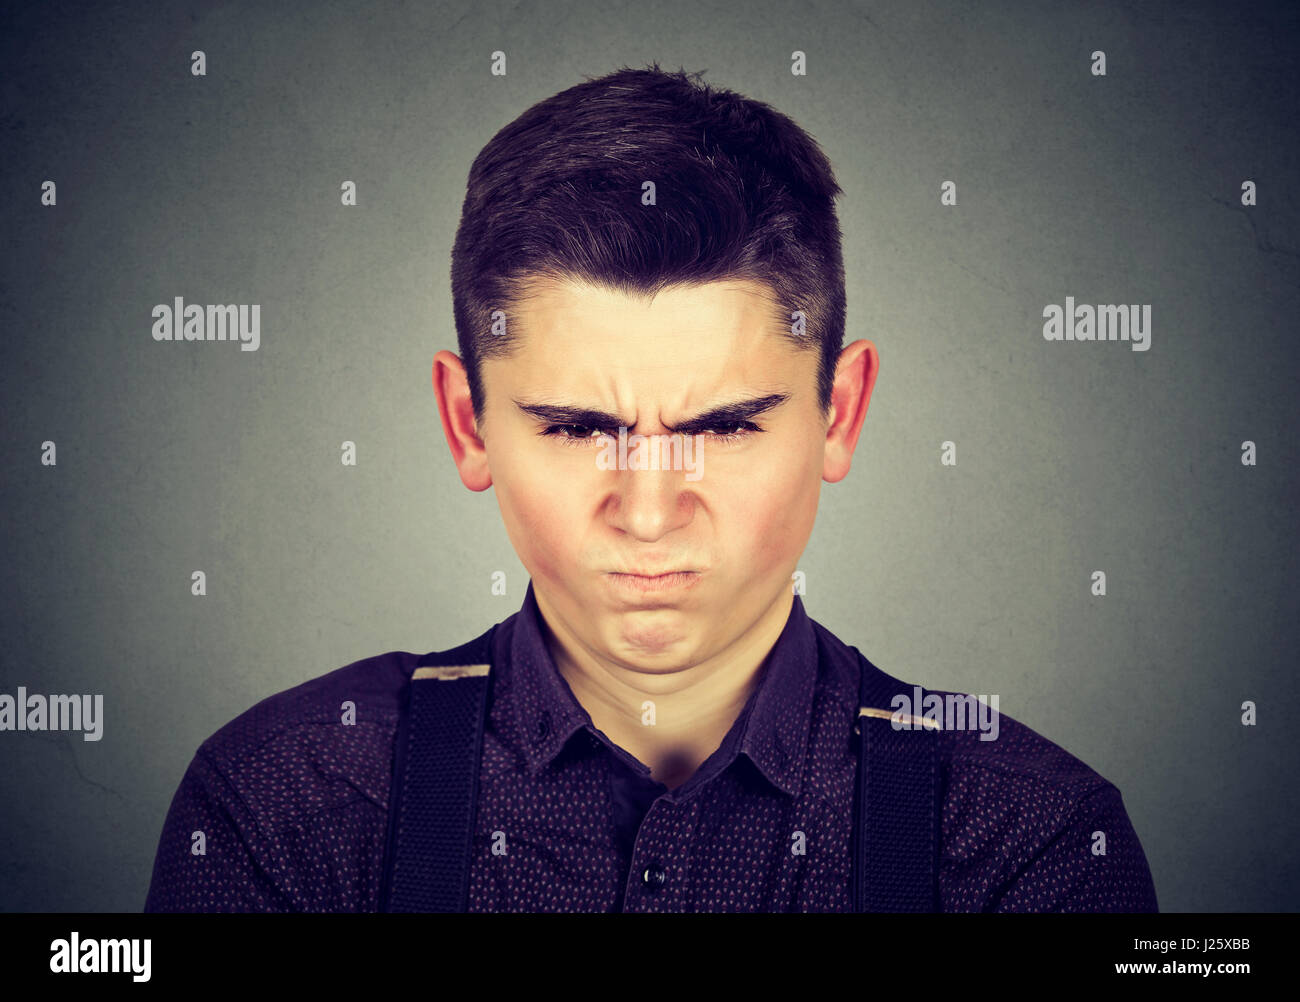 Grimace face clip art stock photo woman pulls a face in upset - Angry Young Man About To Have Nervous Breakdown Isolated On Gray Background Negative Human Emotion